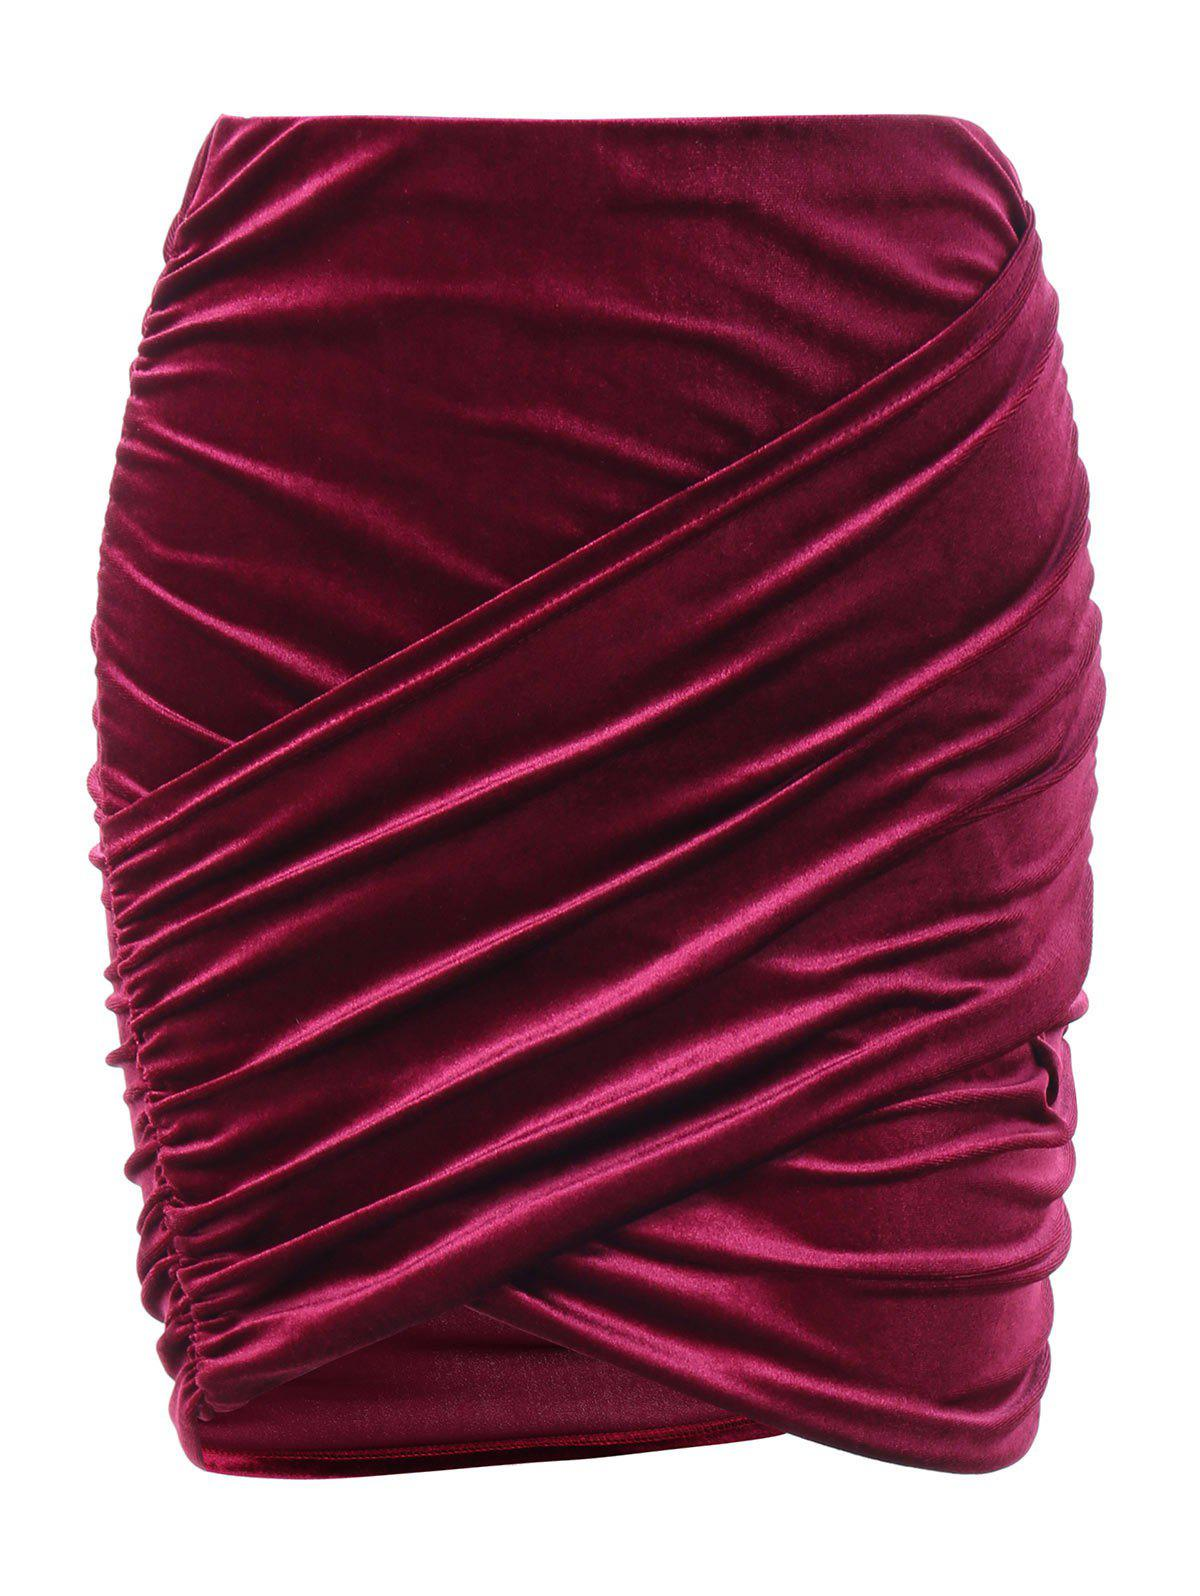 Velvet Ruched Strapless Tank Top - RED ONE SIZE